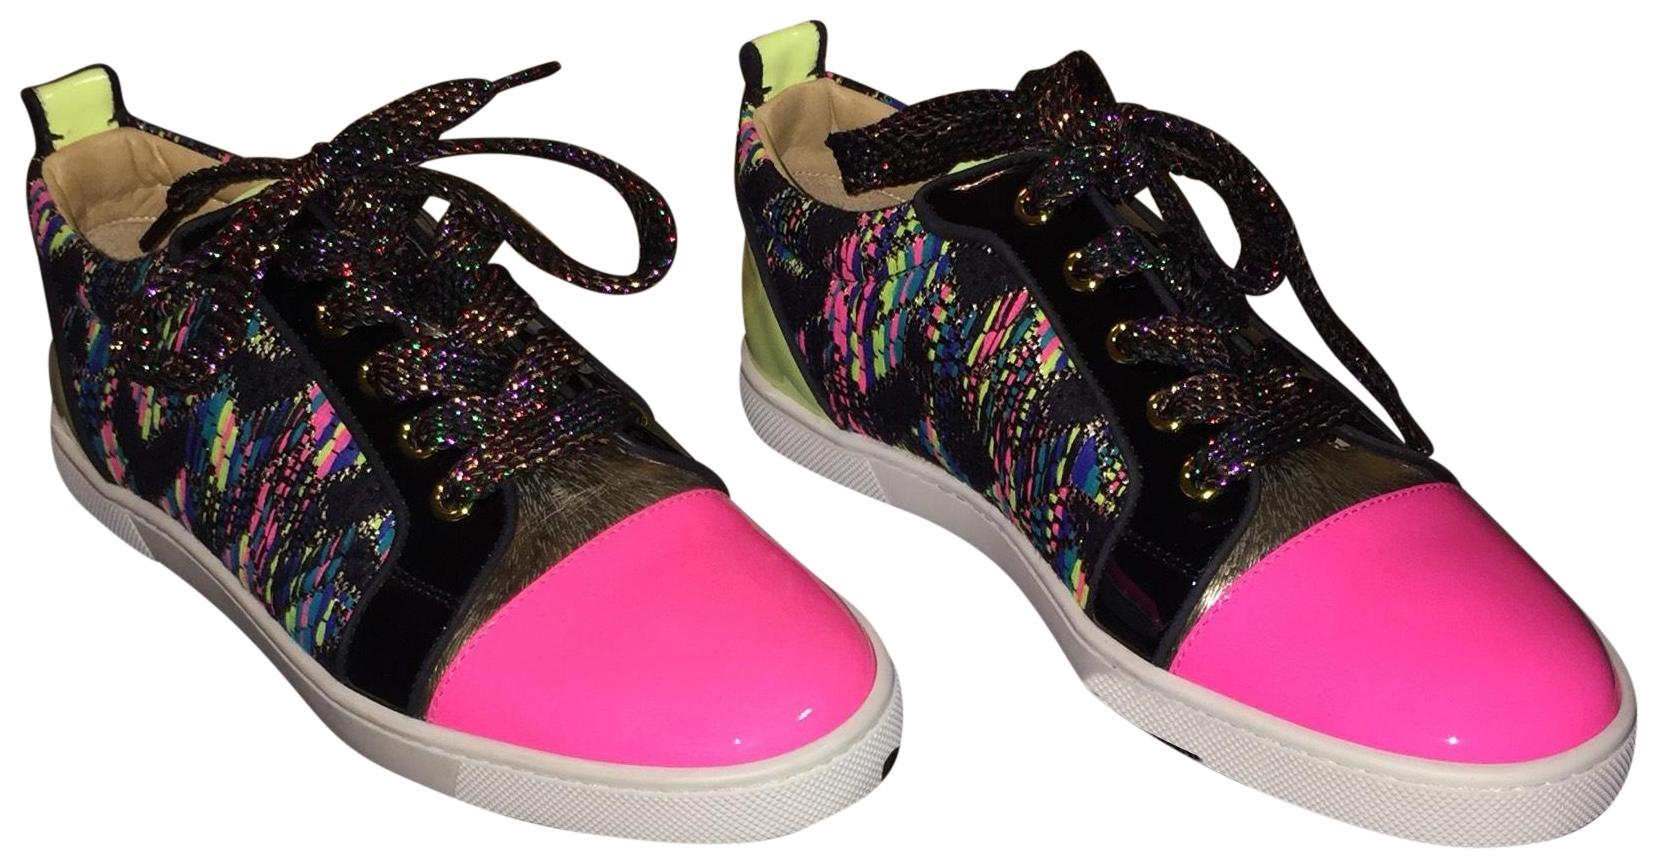 a8759938561f Christian Louboutin Black Gondoliere Flat Sneakers Sneakers Sneakers Size  EU 36 (Approx. US 6